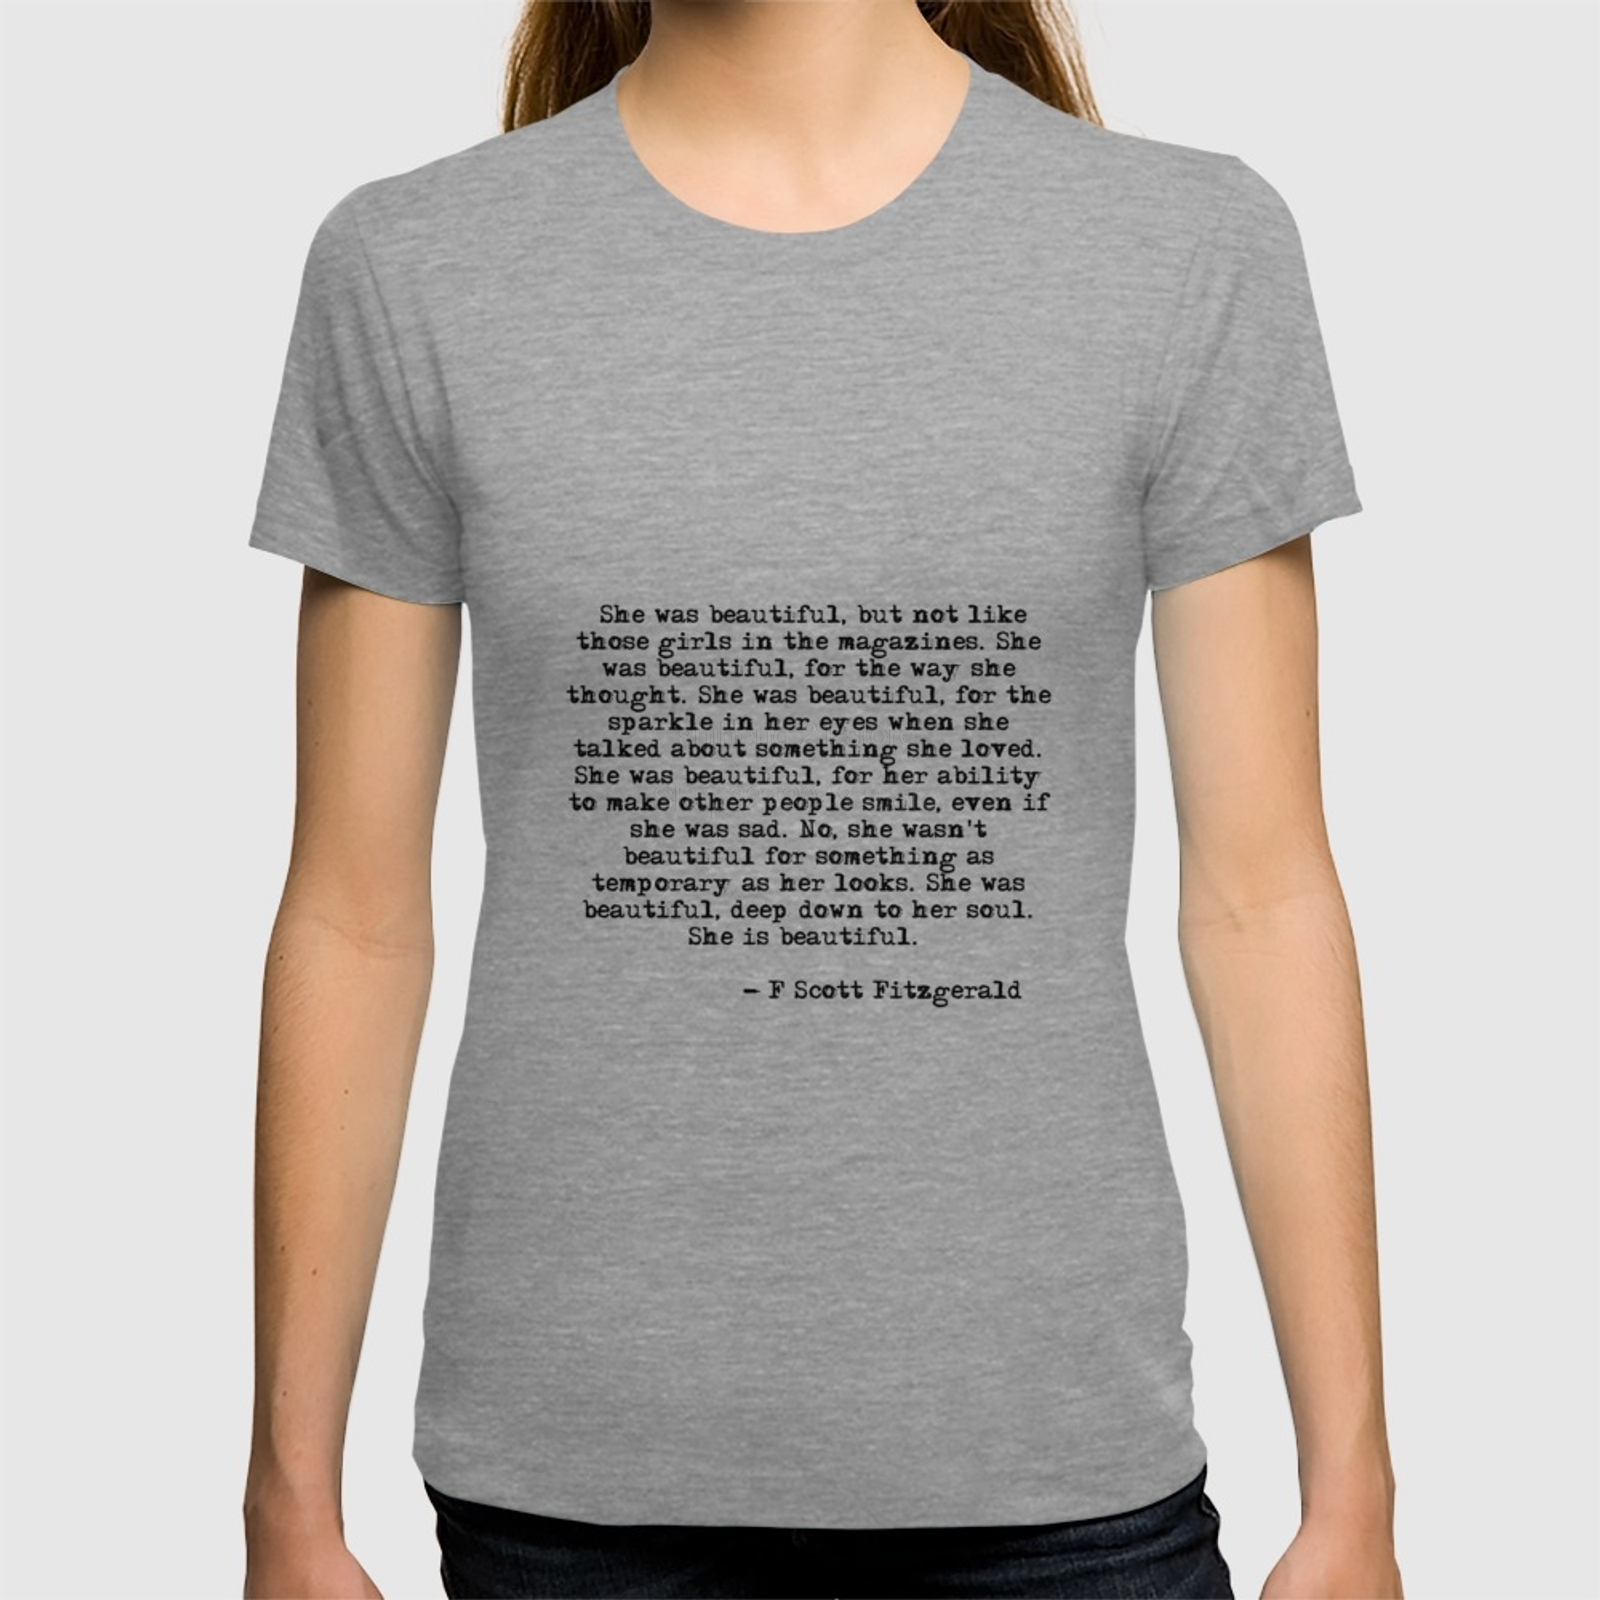 b8a53f80 She was beautiful Fitzgerald quote T shirt Summer Fashion Men's Short  Sleeve T Shirt-in T-Shirts from Men's Clothing on Aliexpress.com | Alibaba  Group